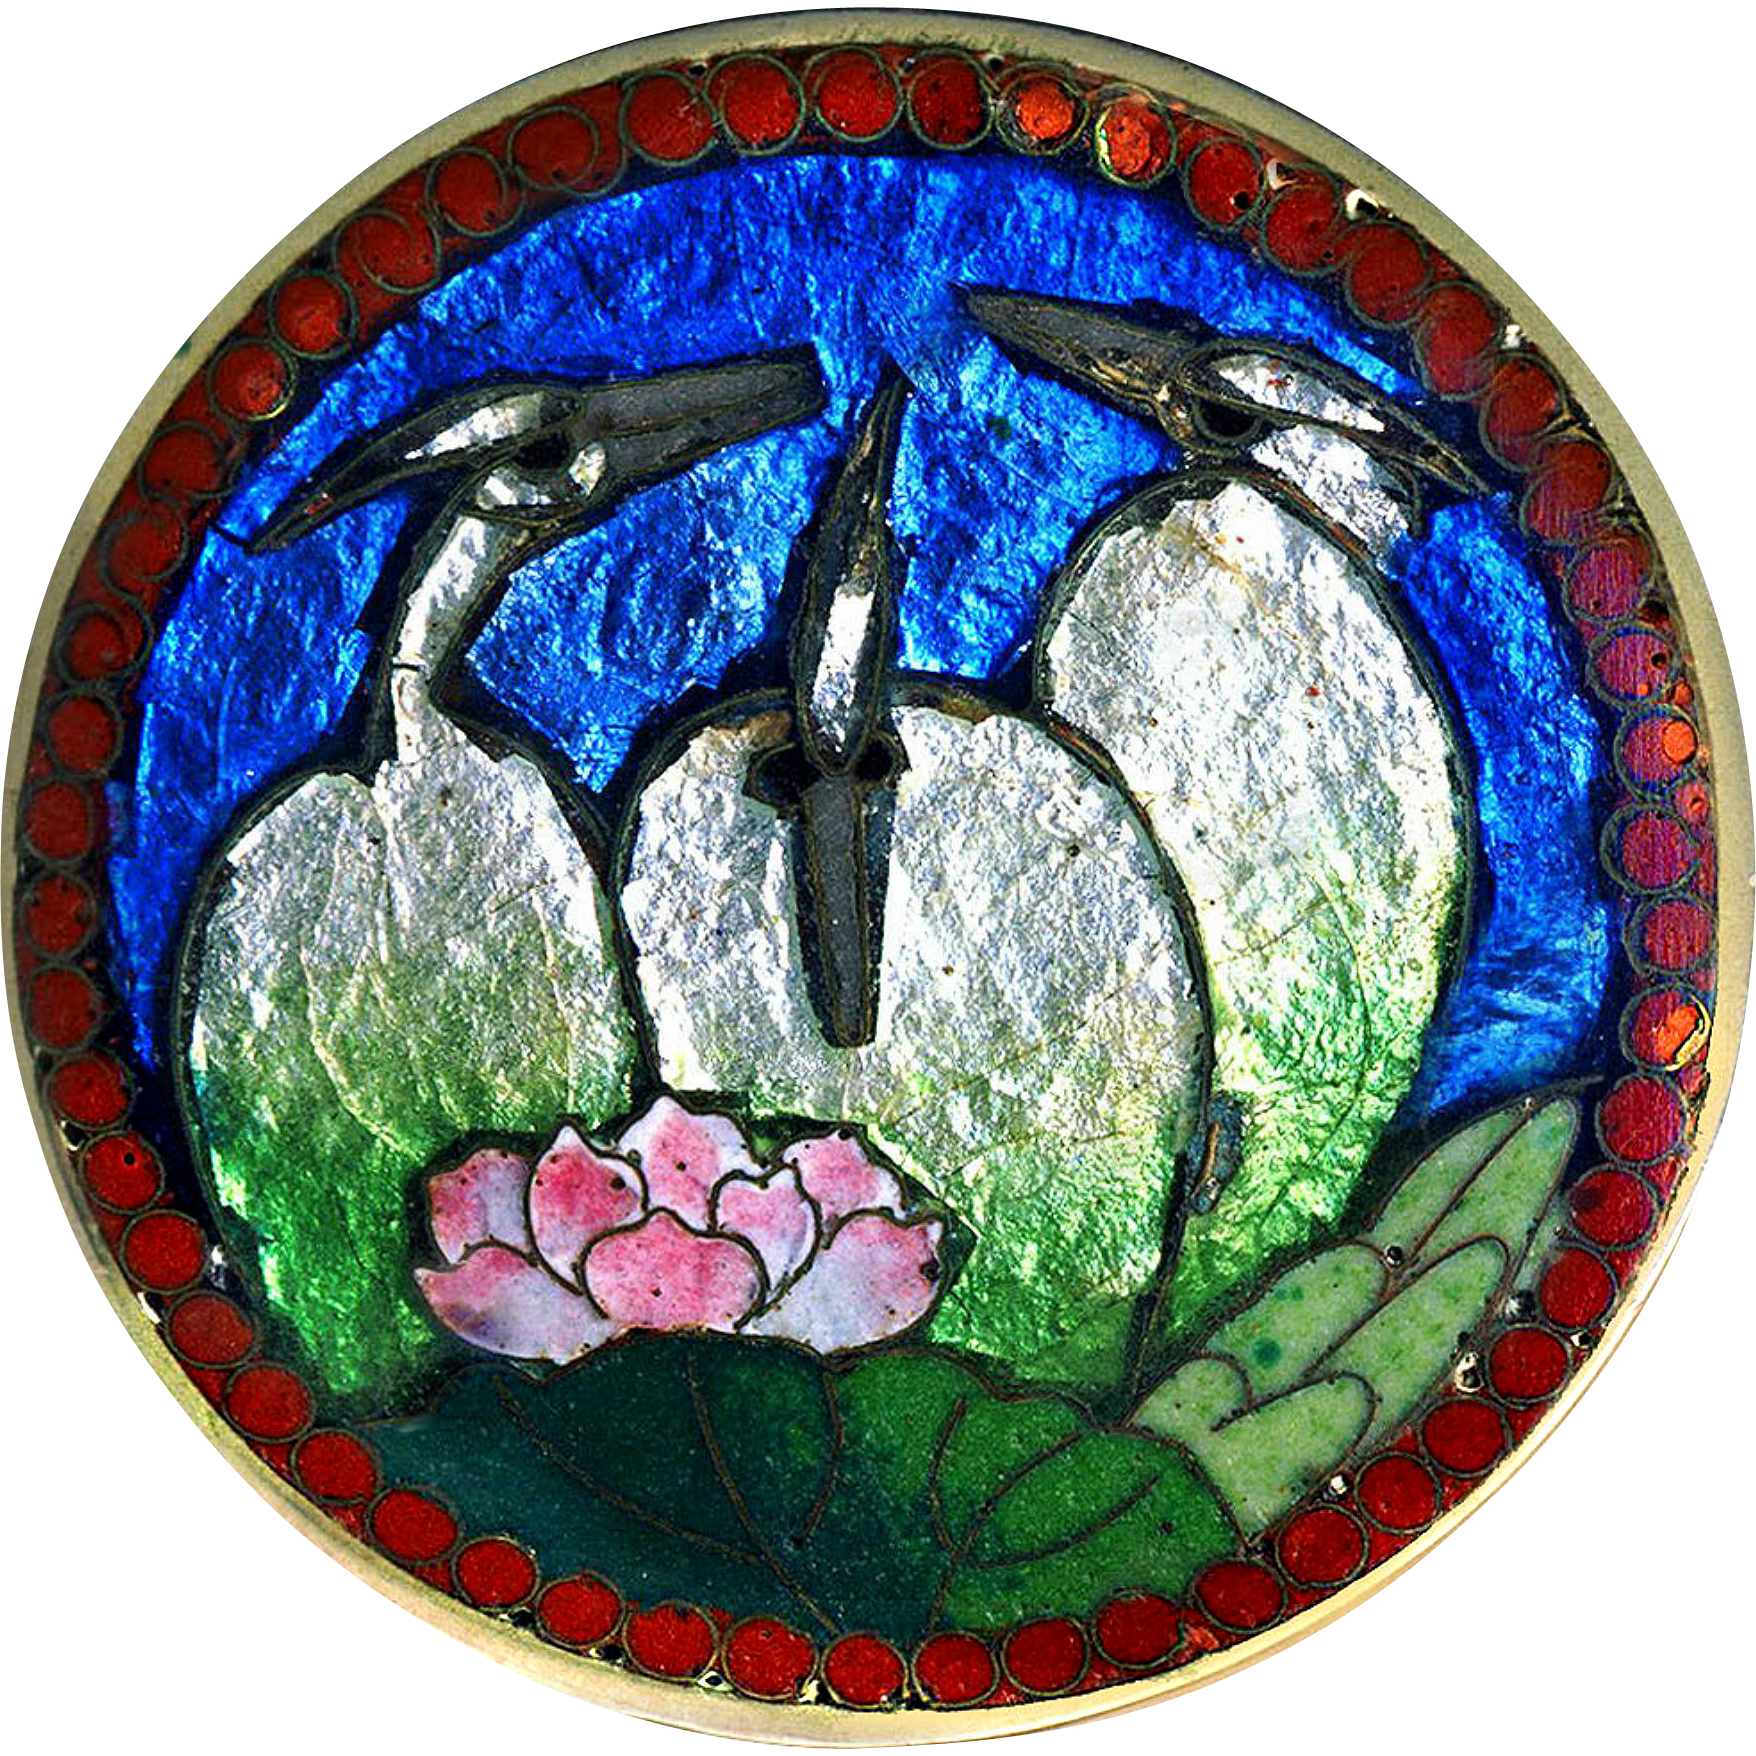 Brooch--Whimsical Late 19th C. Fine SilverJapanese Foil (Gin Bari) Cloisonne Enamel Egrets and Water Lily